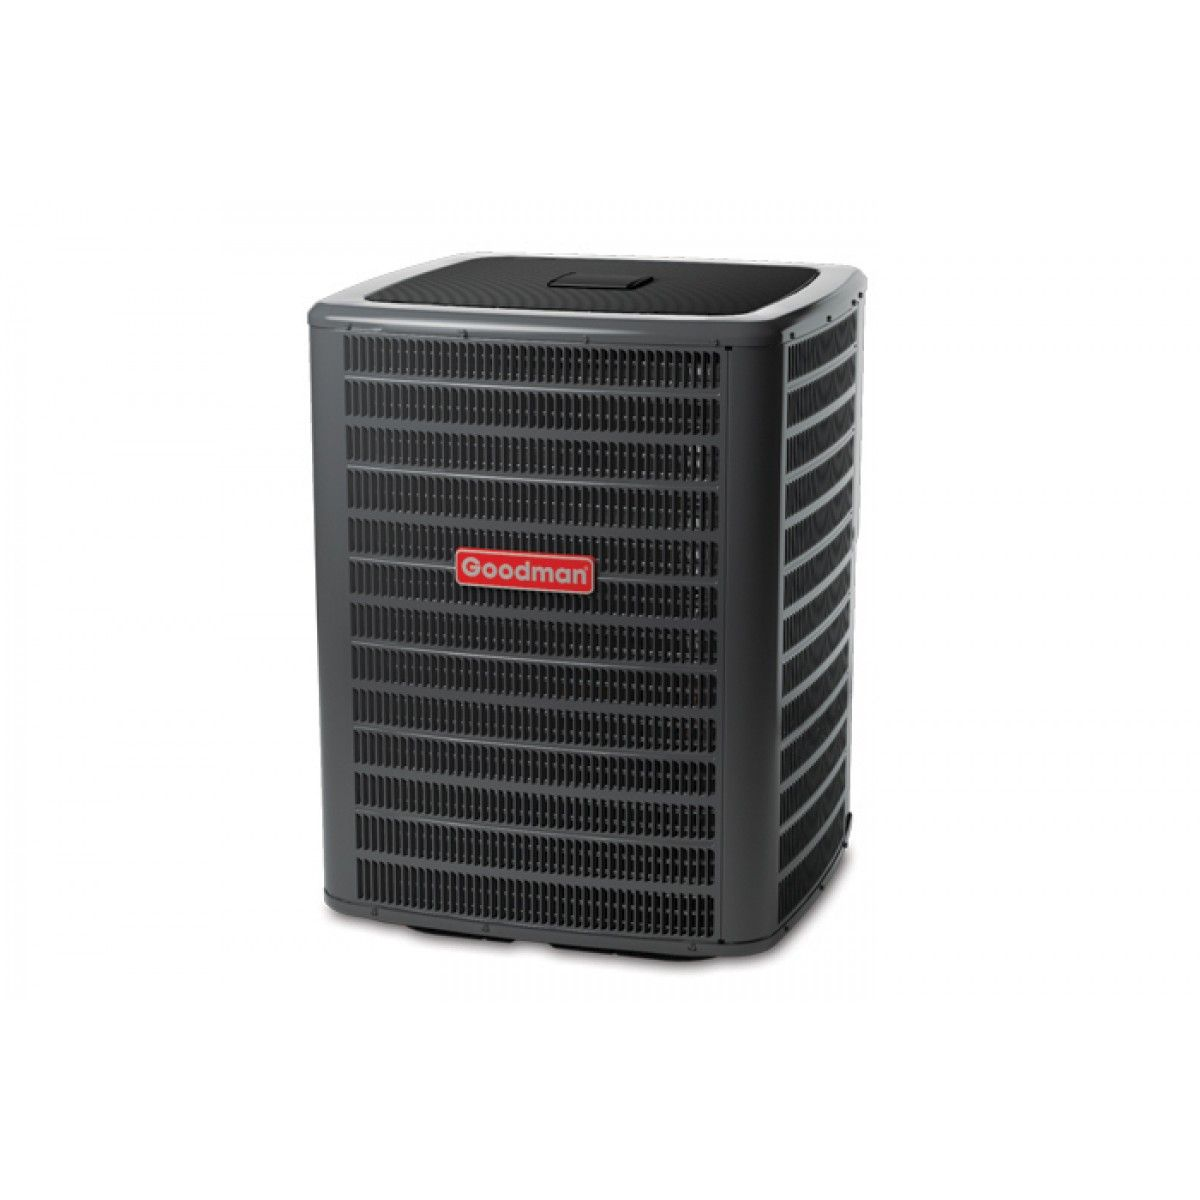 Goodman 3 5 ton 16 seer heat pump system star energy for 5 star energy